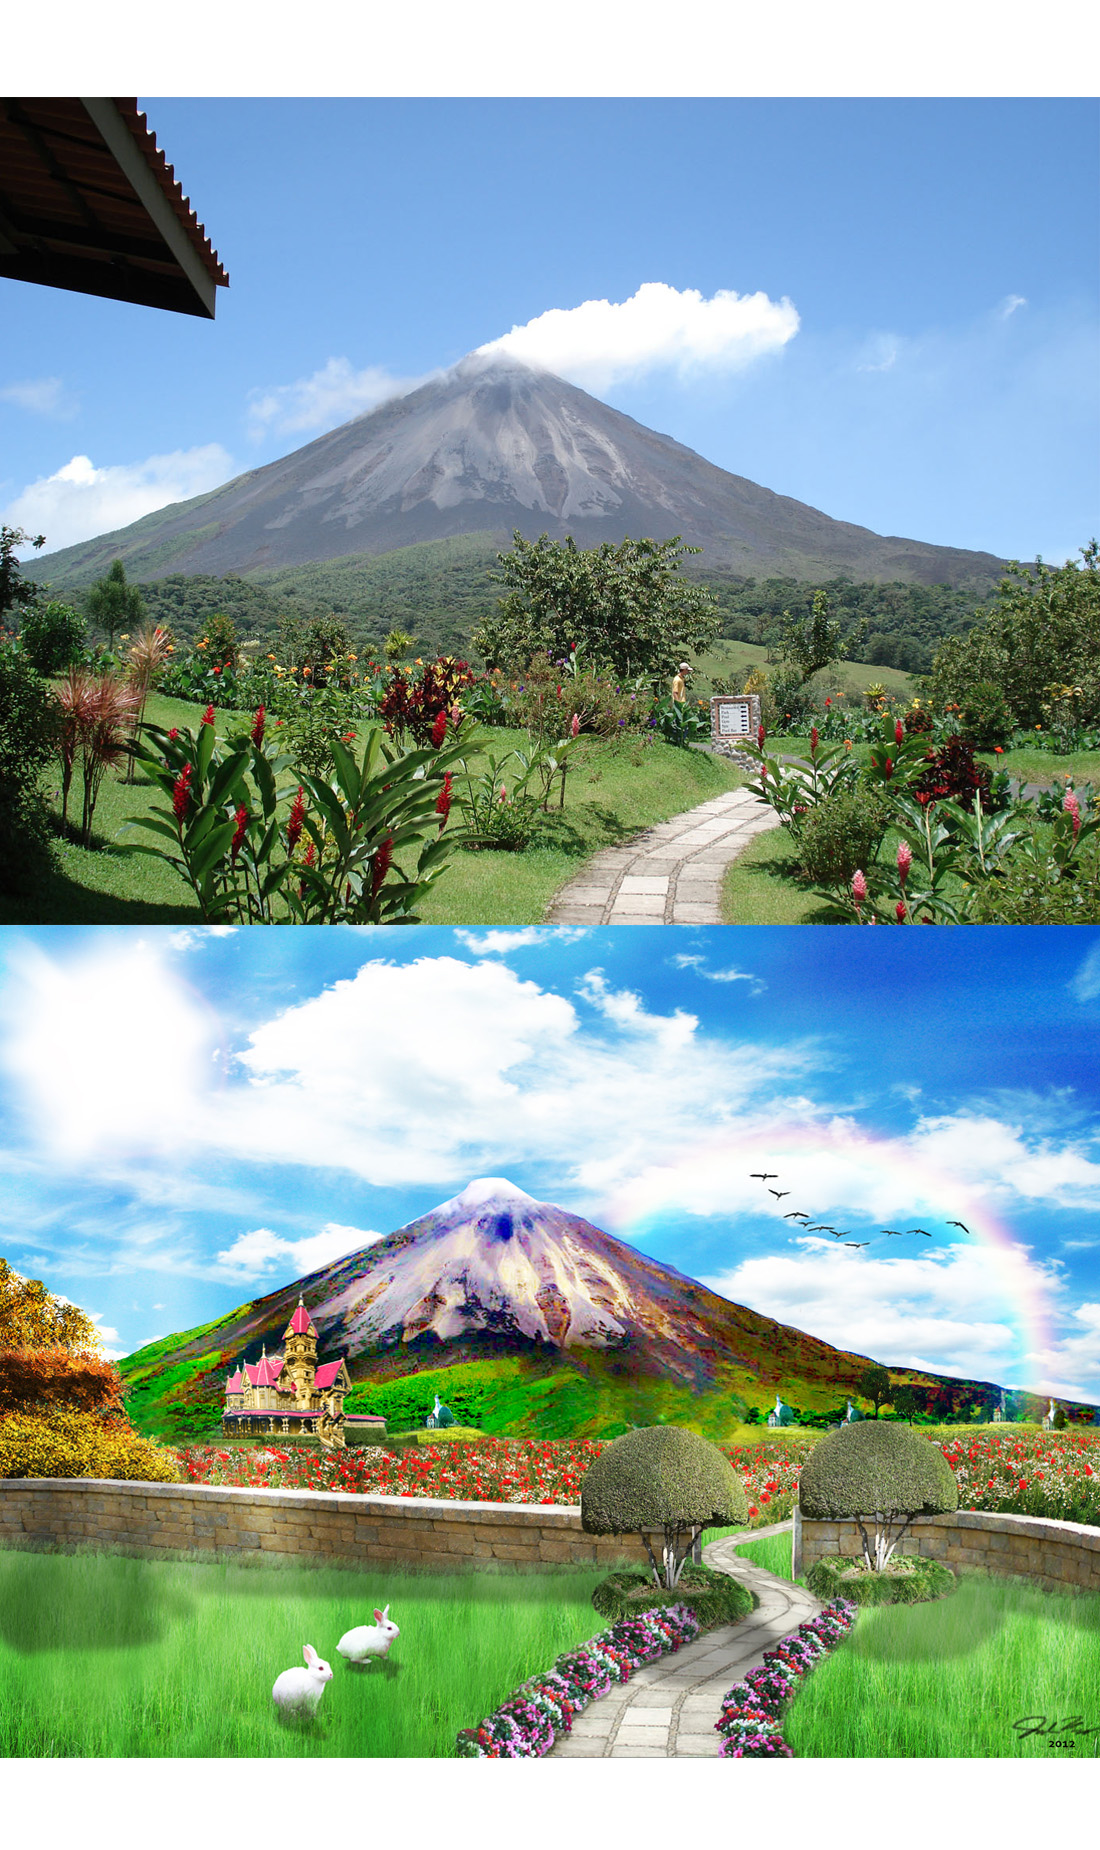 Before and after.  This was a matte painting that sourced from many different photos to create one beautiful wonderland.